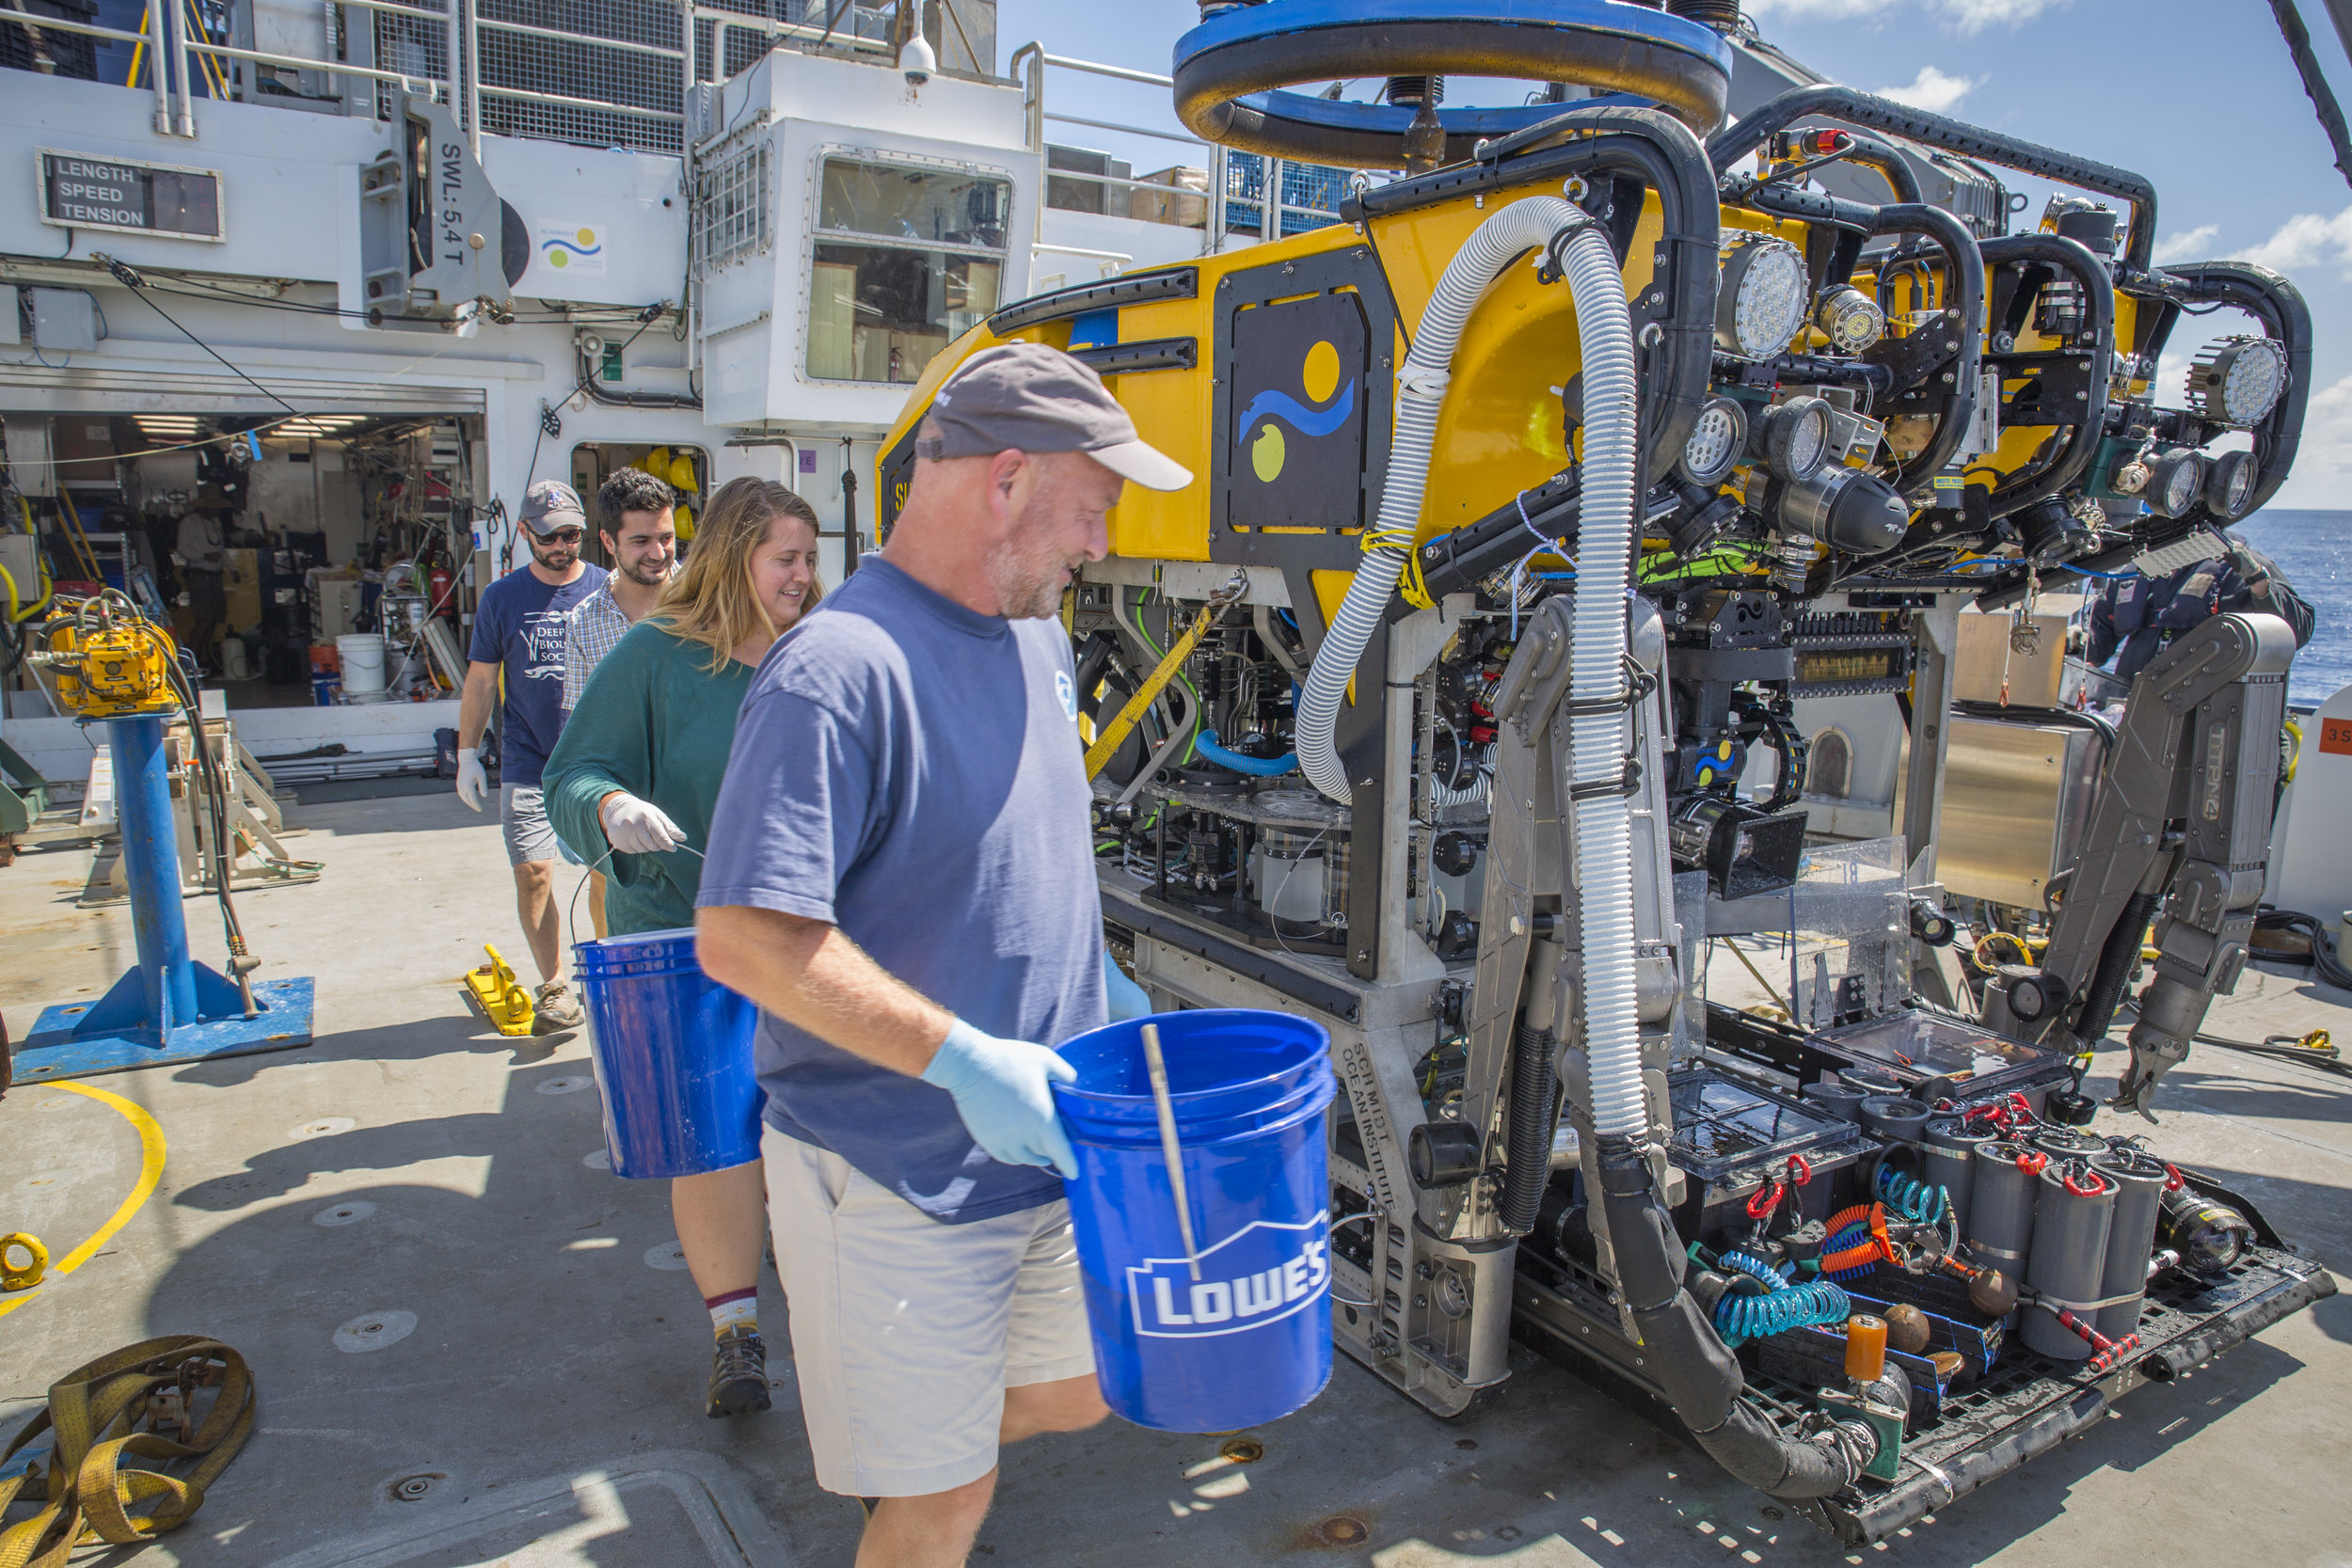 The science team marches out to retrieve samples after a successful dive